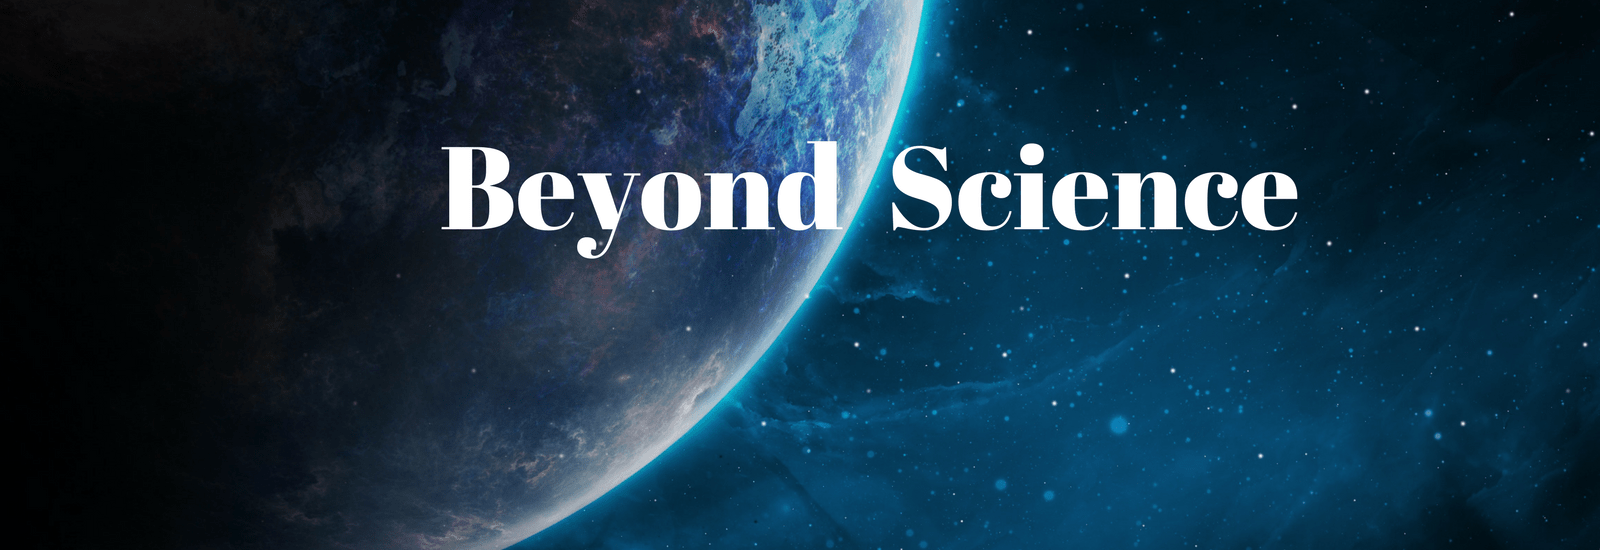 Where Science and Metaphysics Fall Short